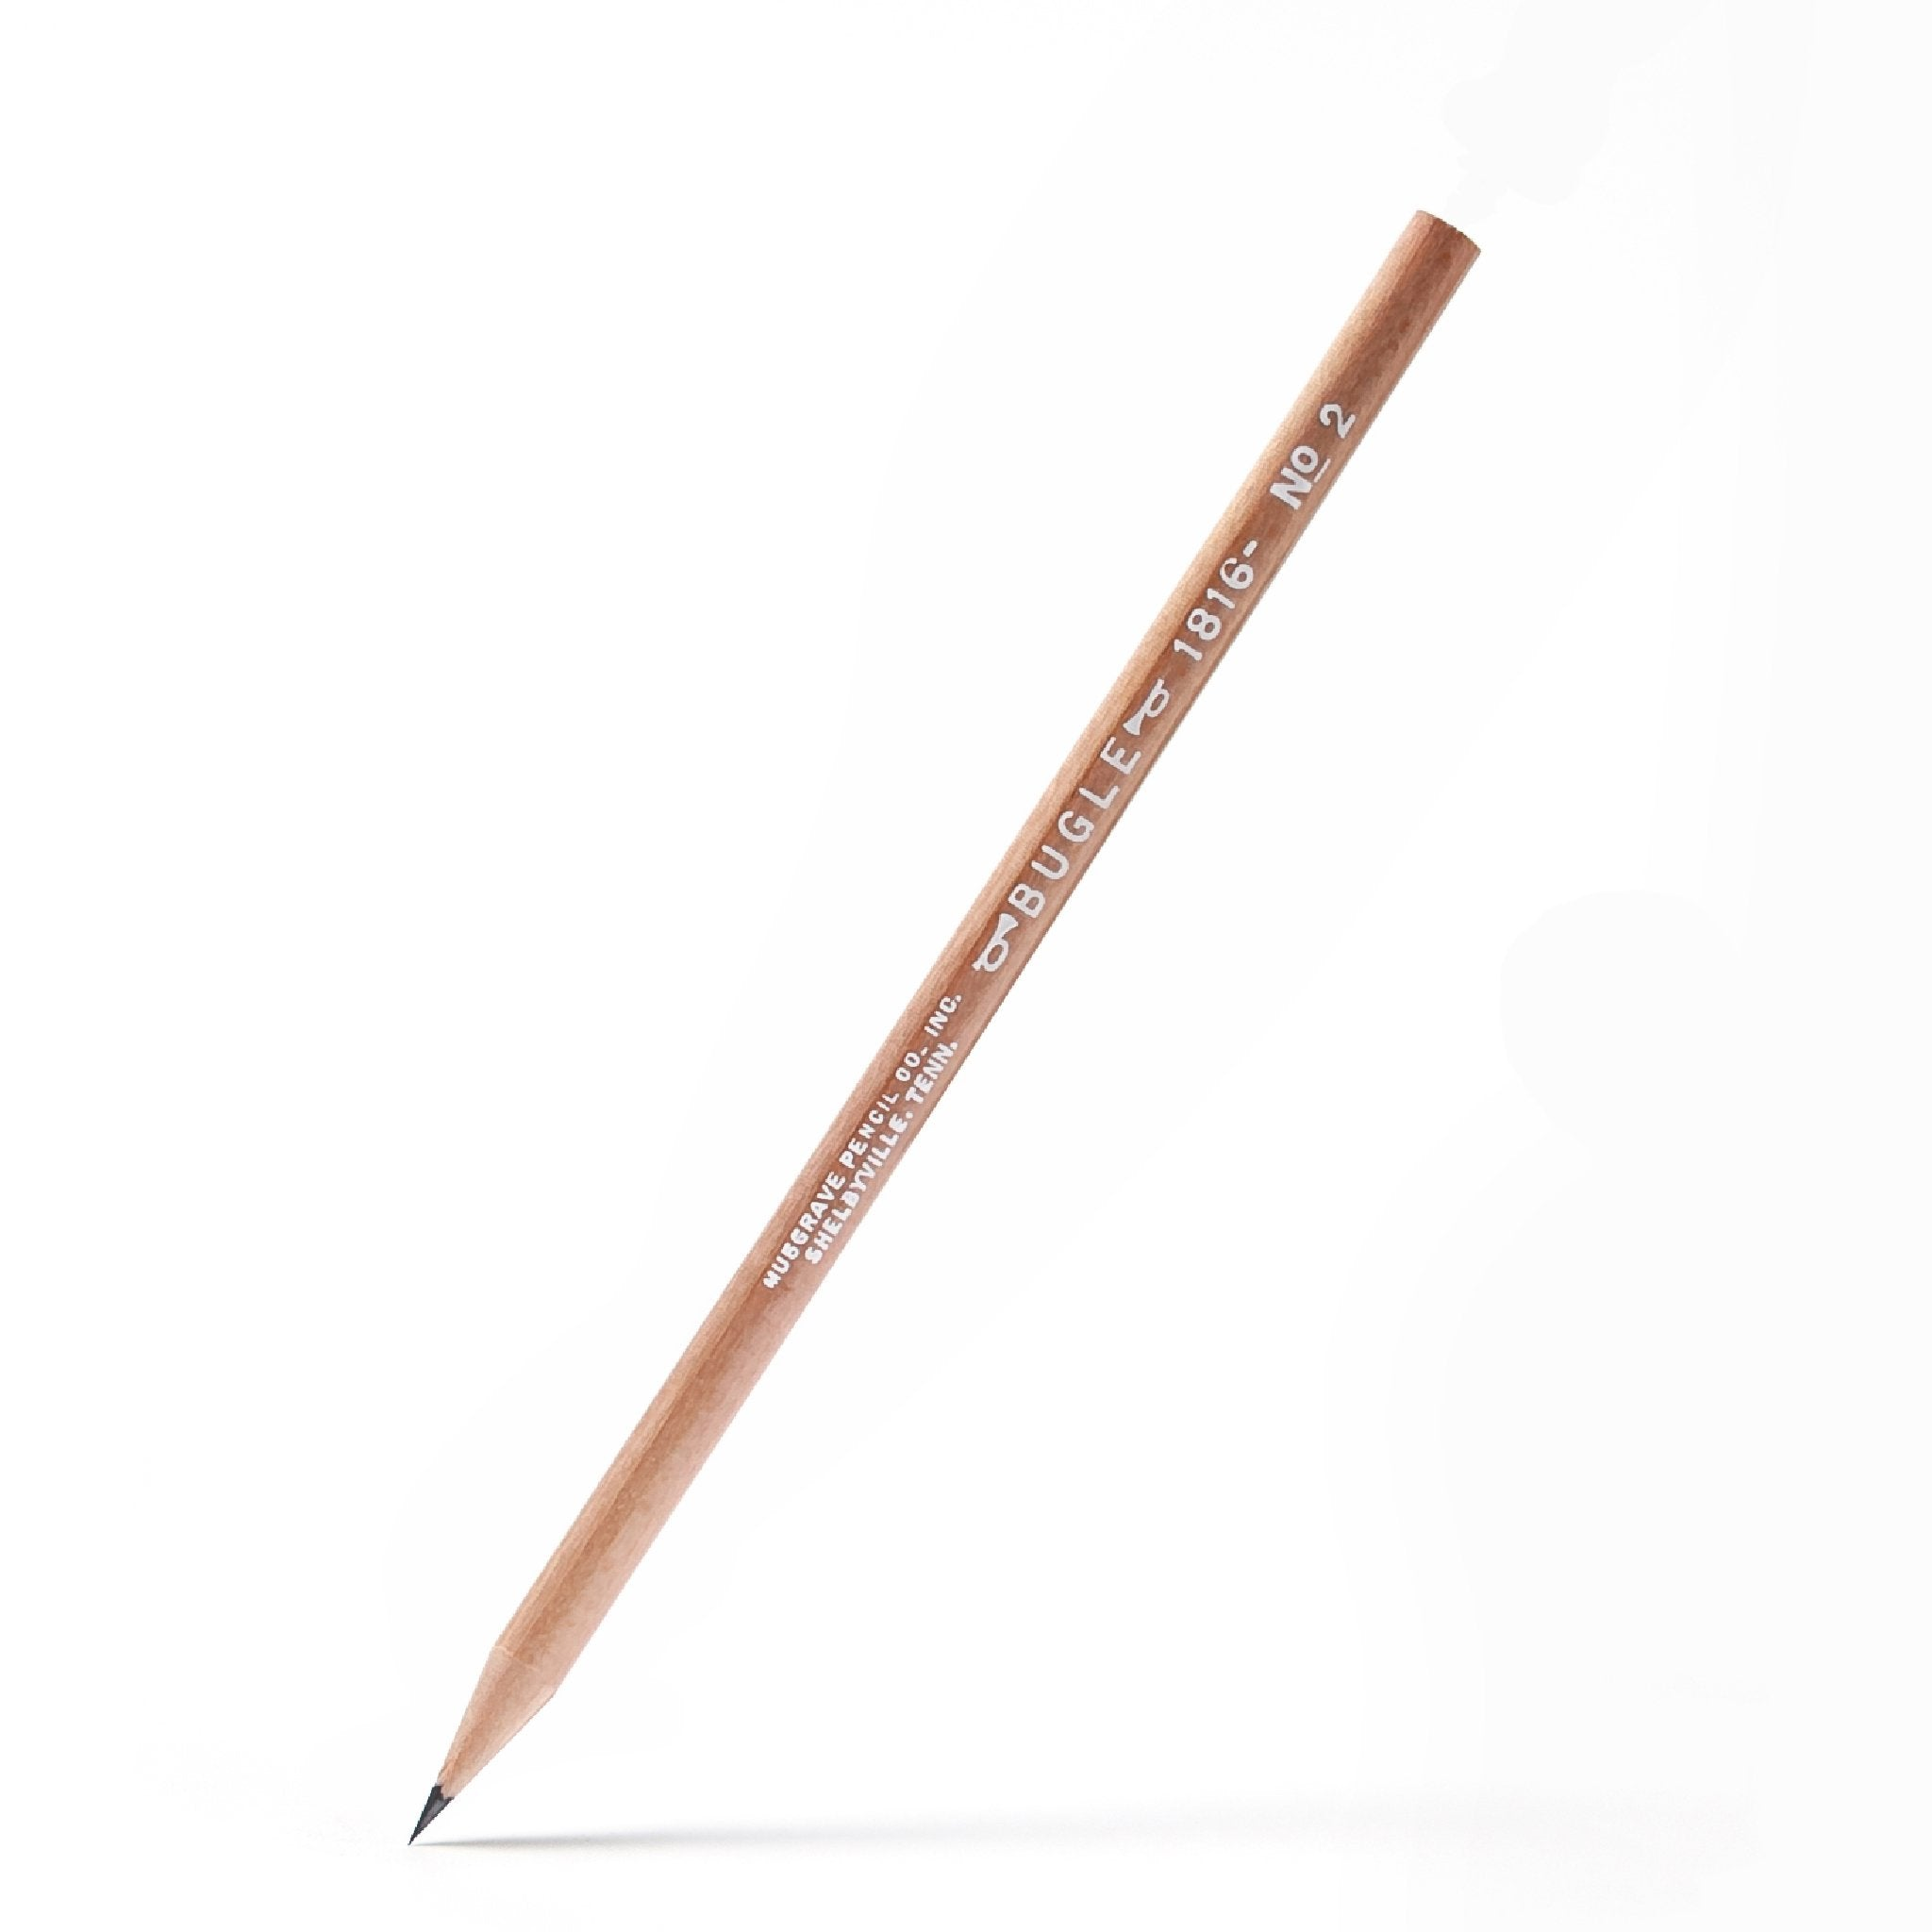 Bugle 1816 | #2 Wood-cased Round Pencil